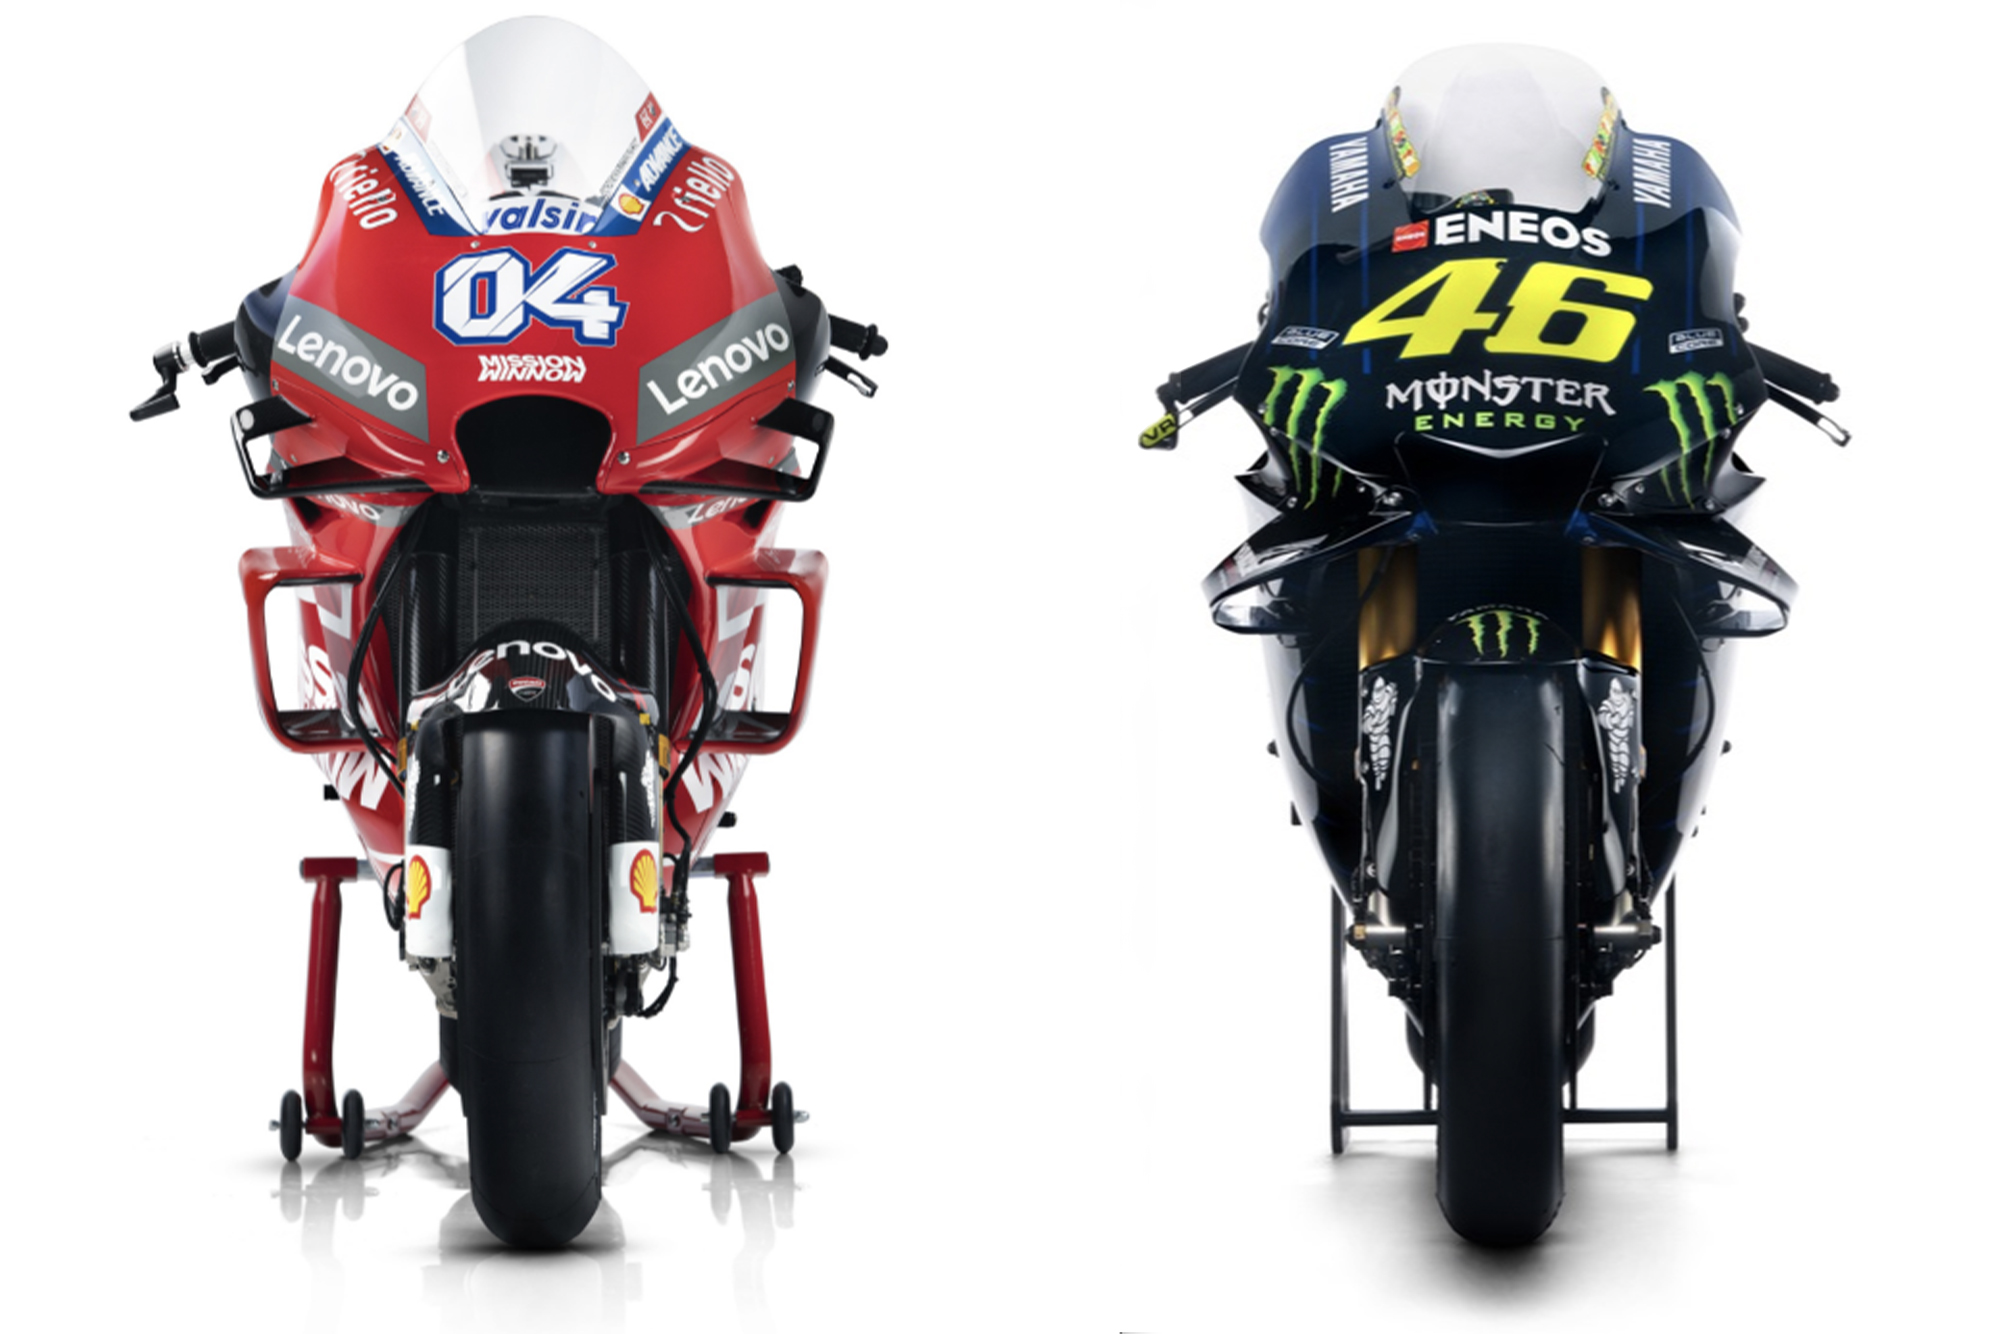 Ducati and Yamaha's 2019 MotoGP bikes side by side